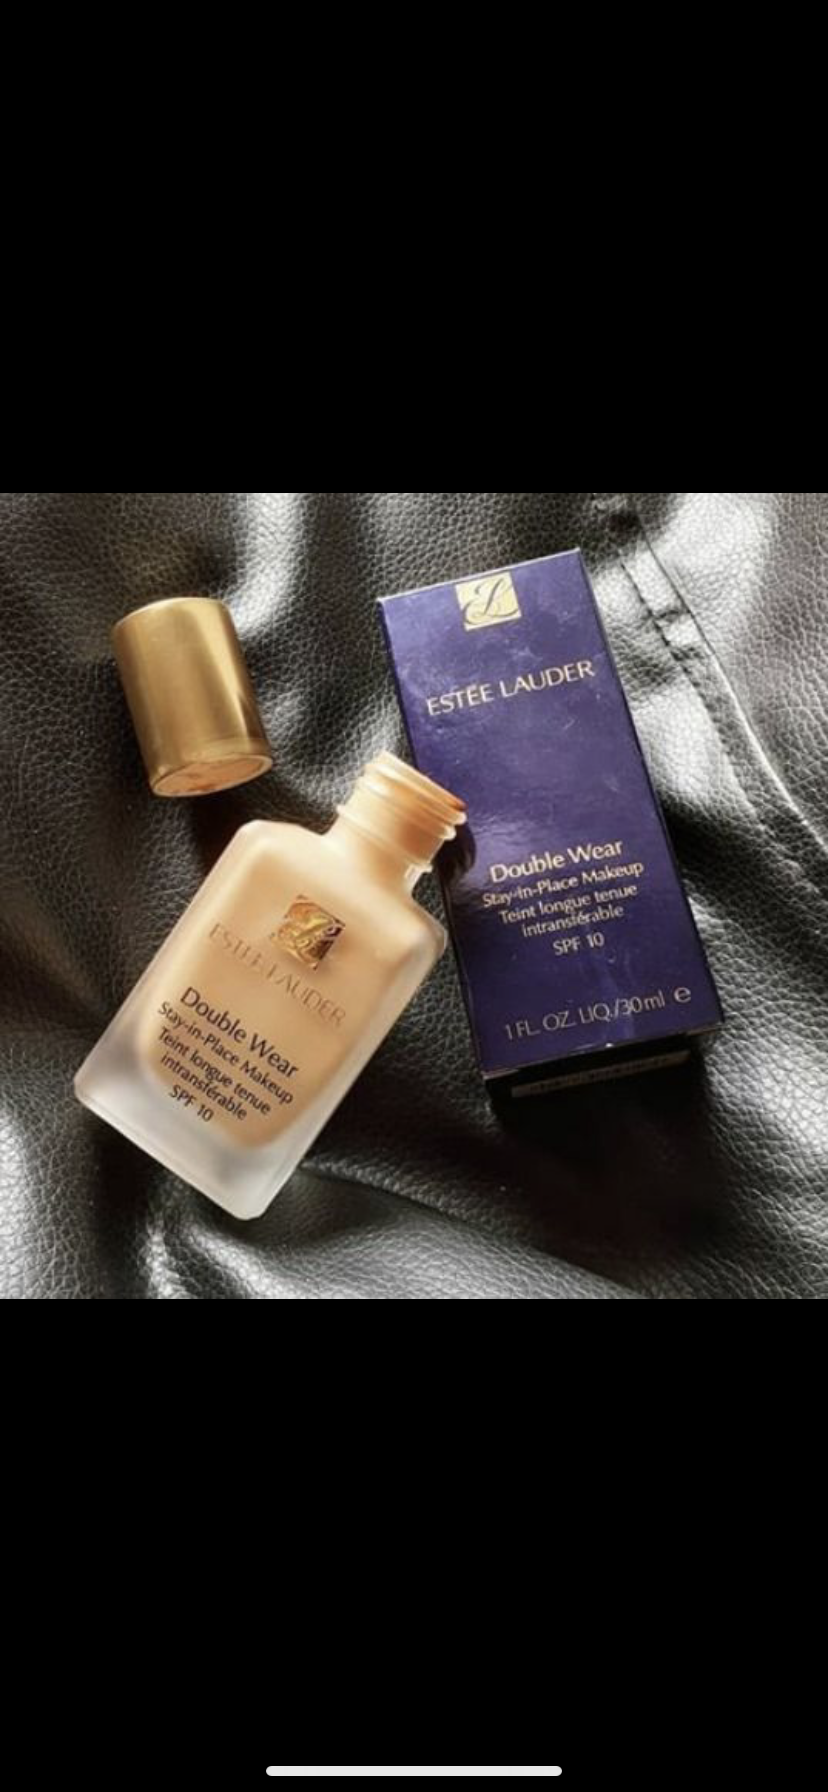 Estee Lauder Double Wear Stay-in-Place Makeup SPF 10 Foundation-FULL COVERAGE FOUNDATION!!!-By bhaktiii